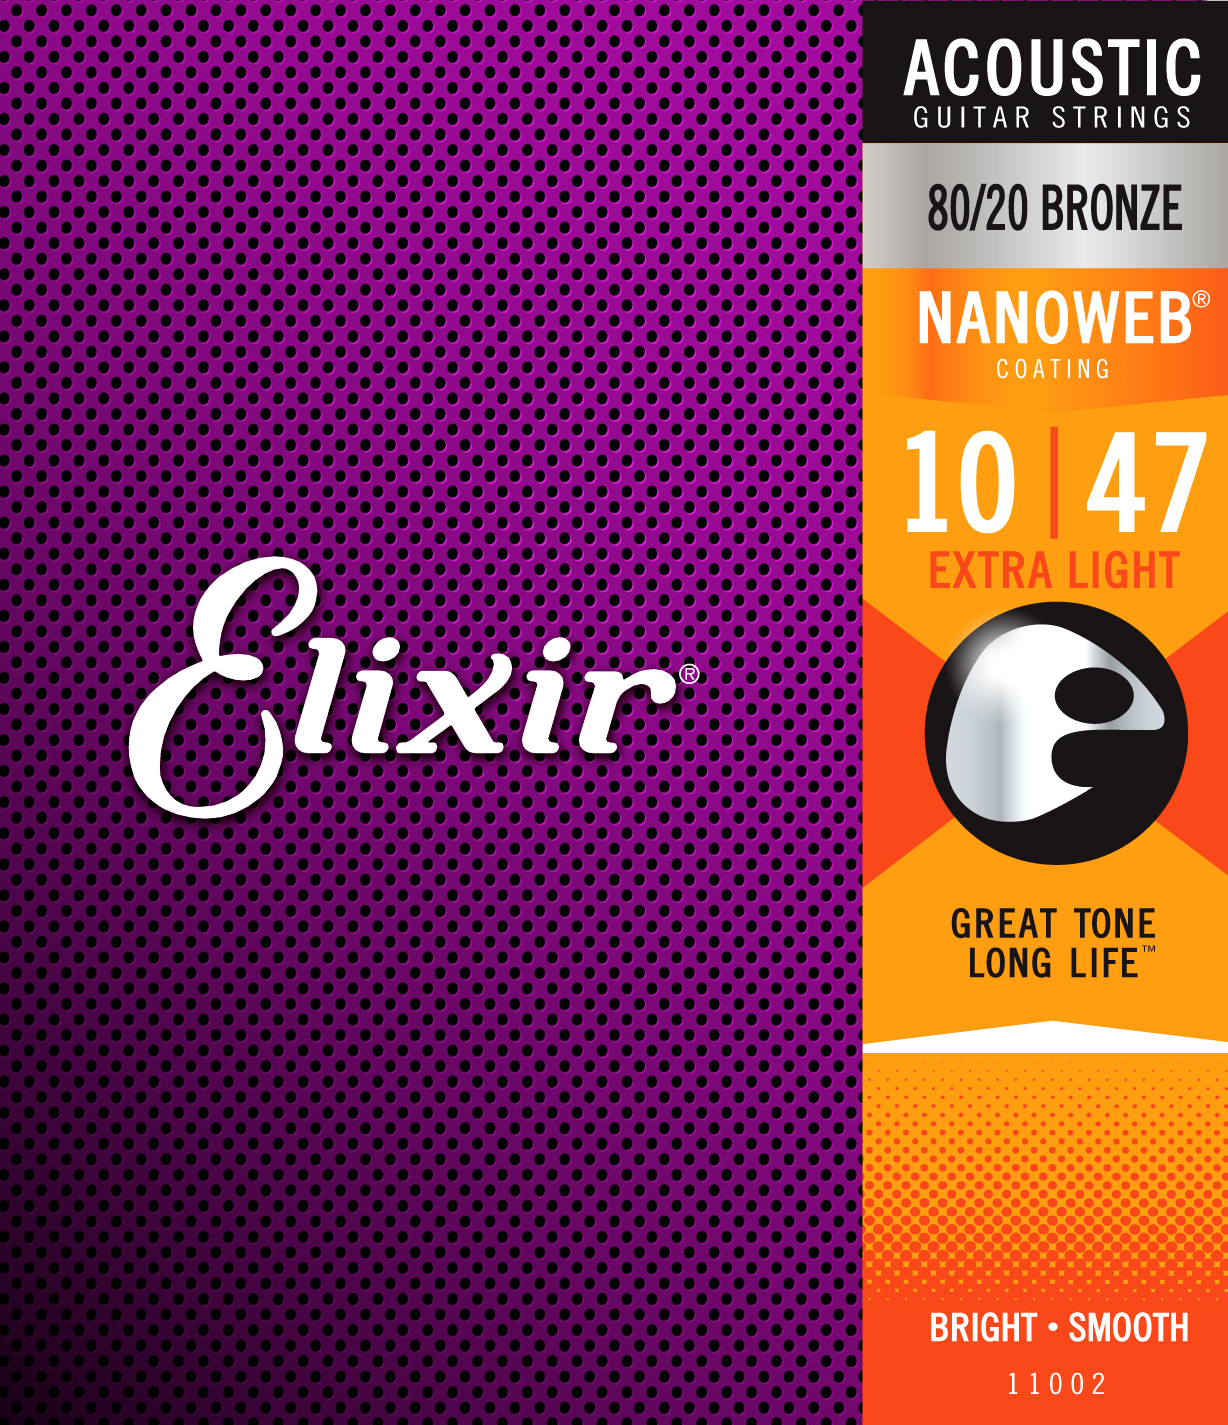 Elixir String Acoustic 80/20 Bronze Guitar Strings with NANOWEB Coating, ALL Models